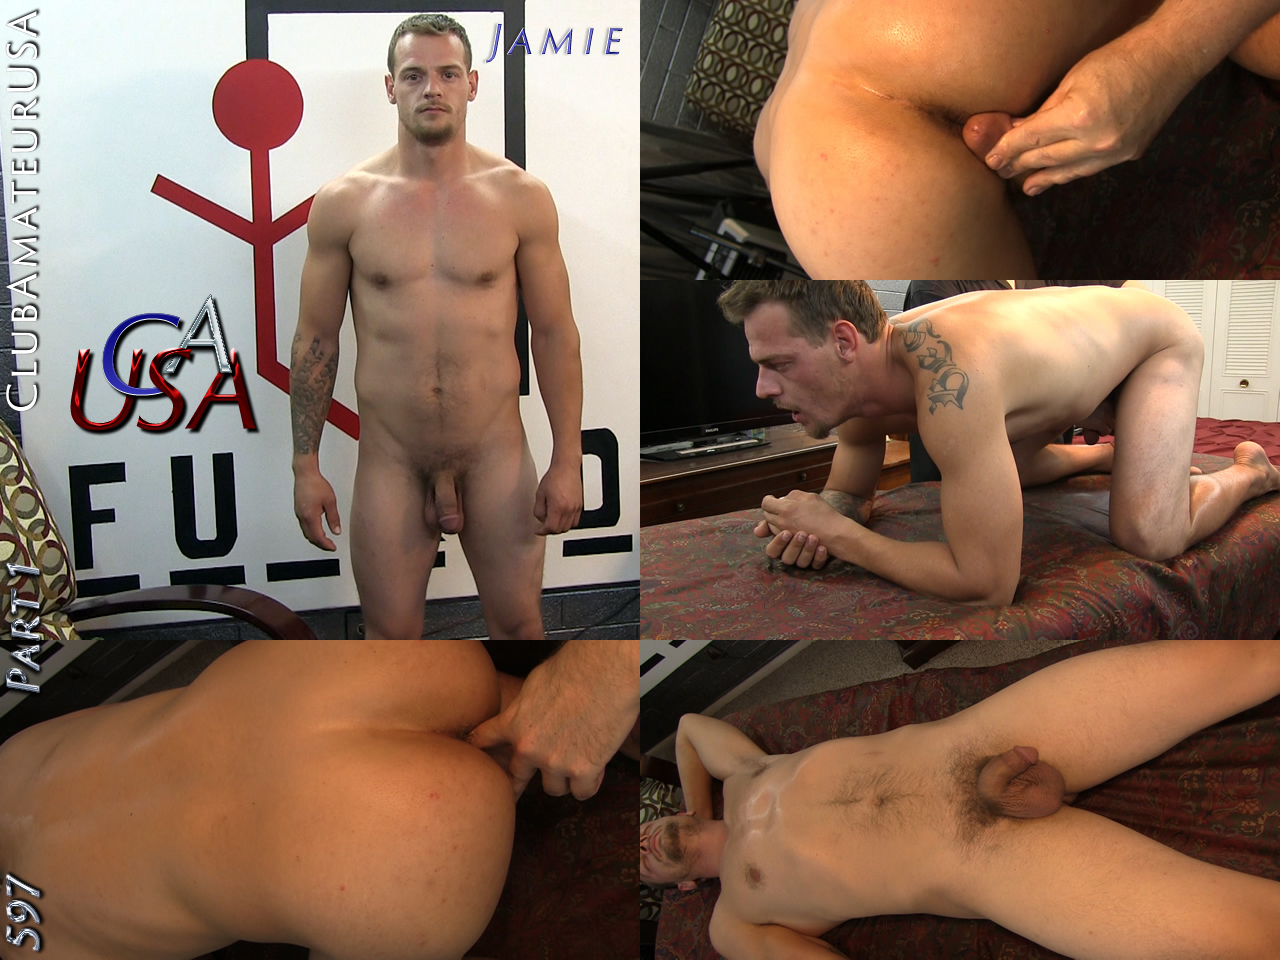 Download or Stream CAUSA 597 Jamie - Part 1 - Click Here Now